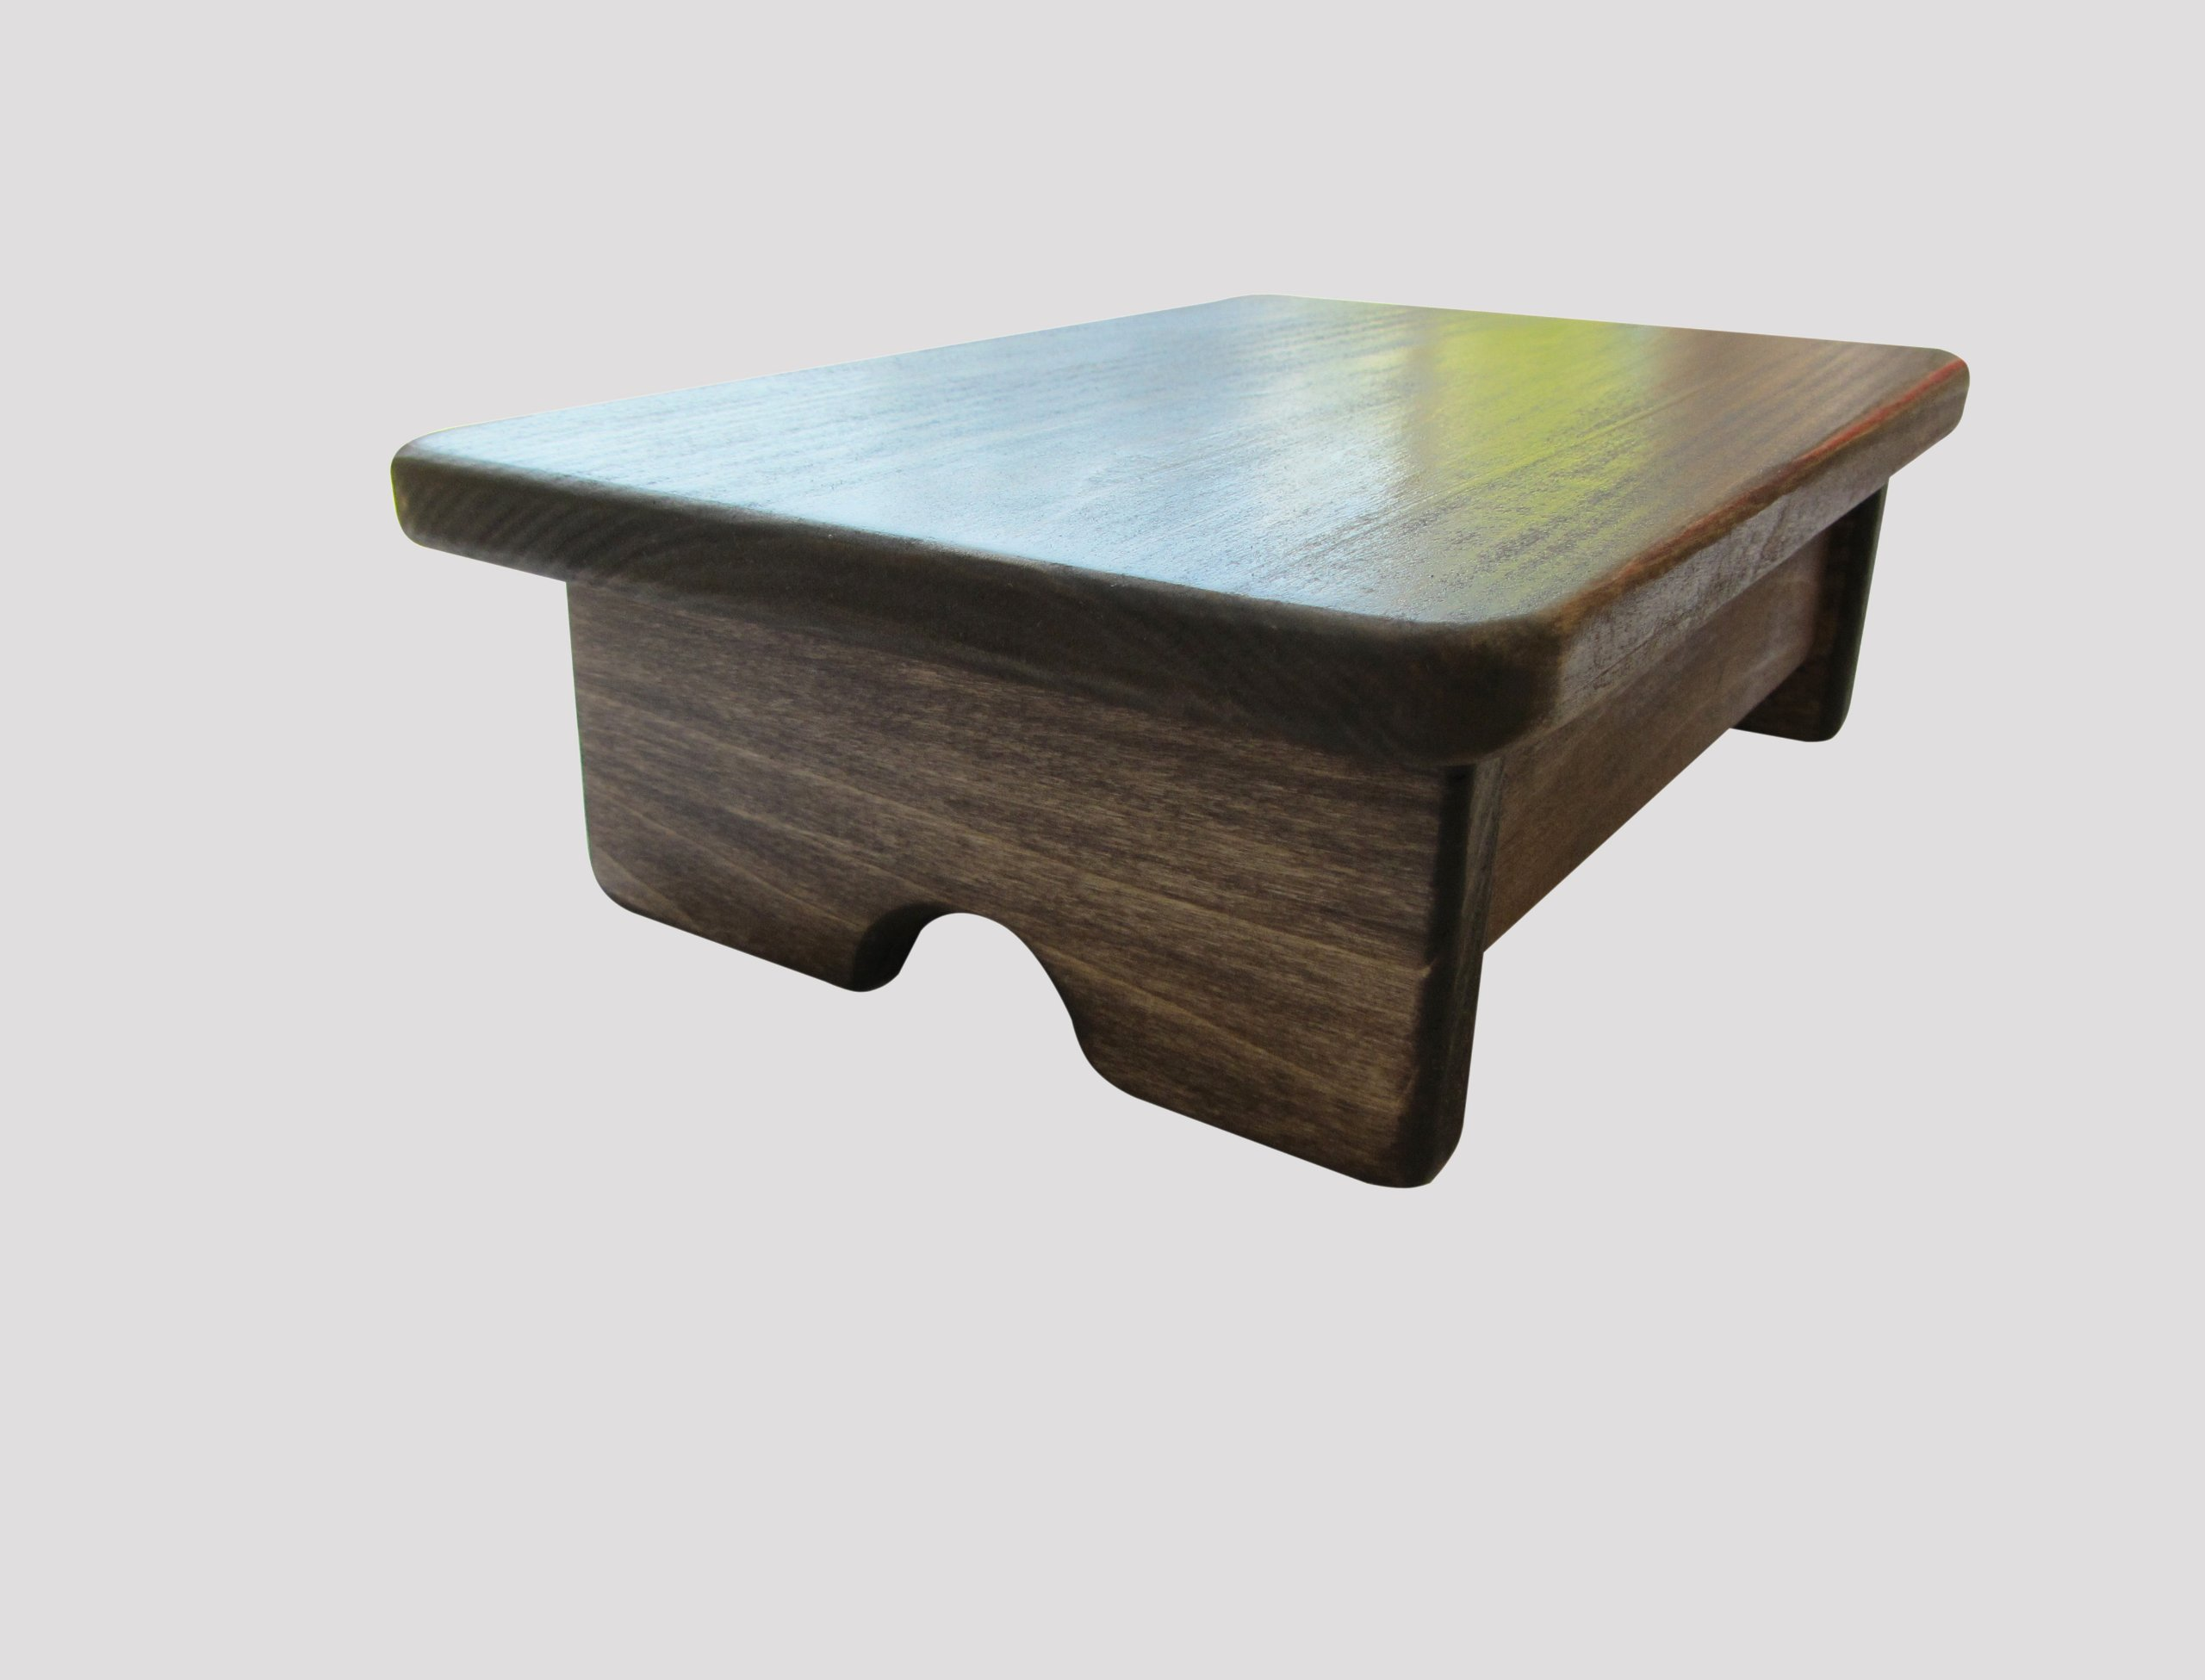 Foot stool poplar wood walnut stain made in the usa